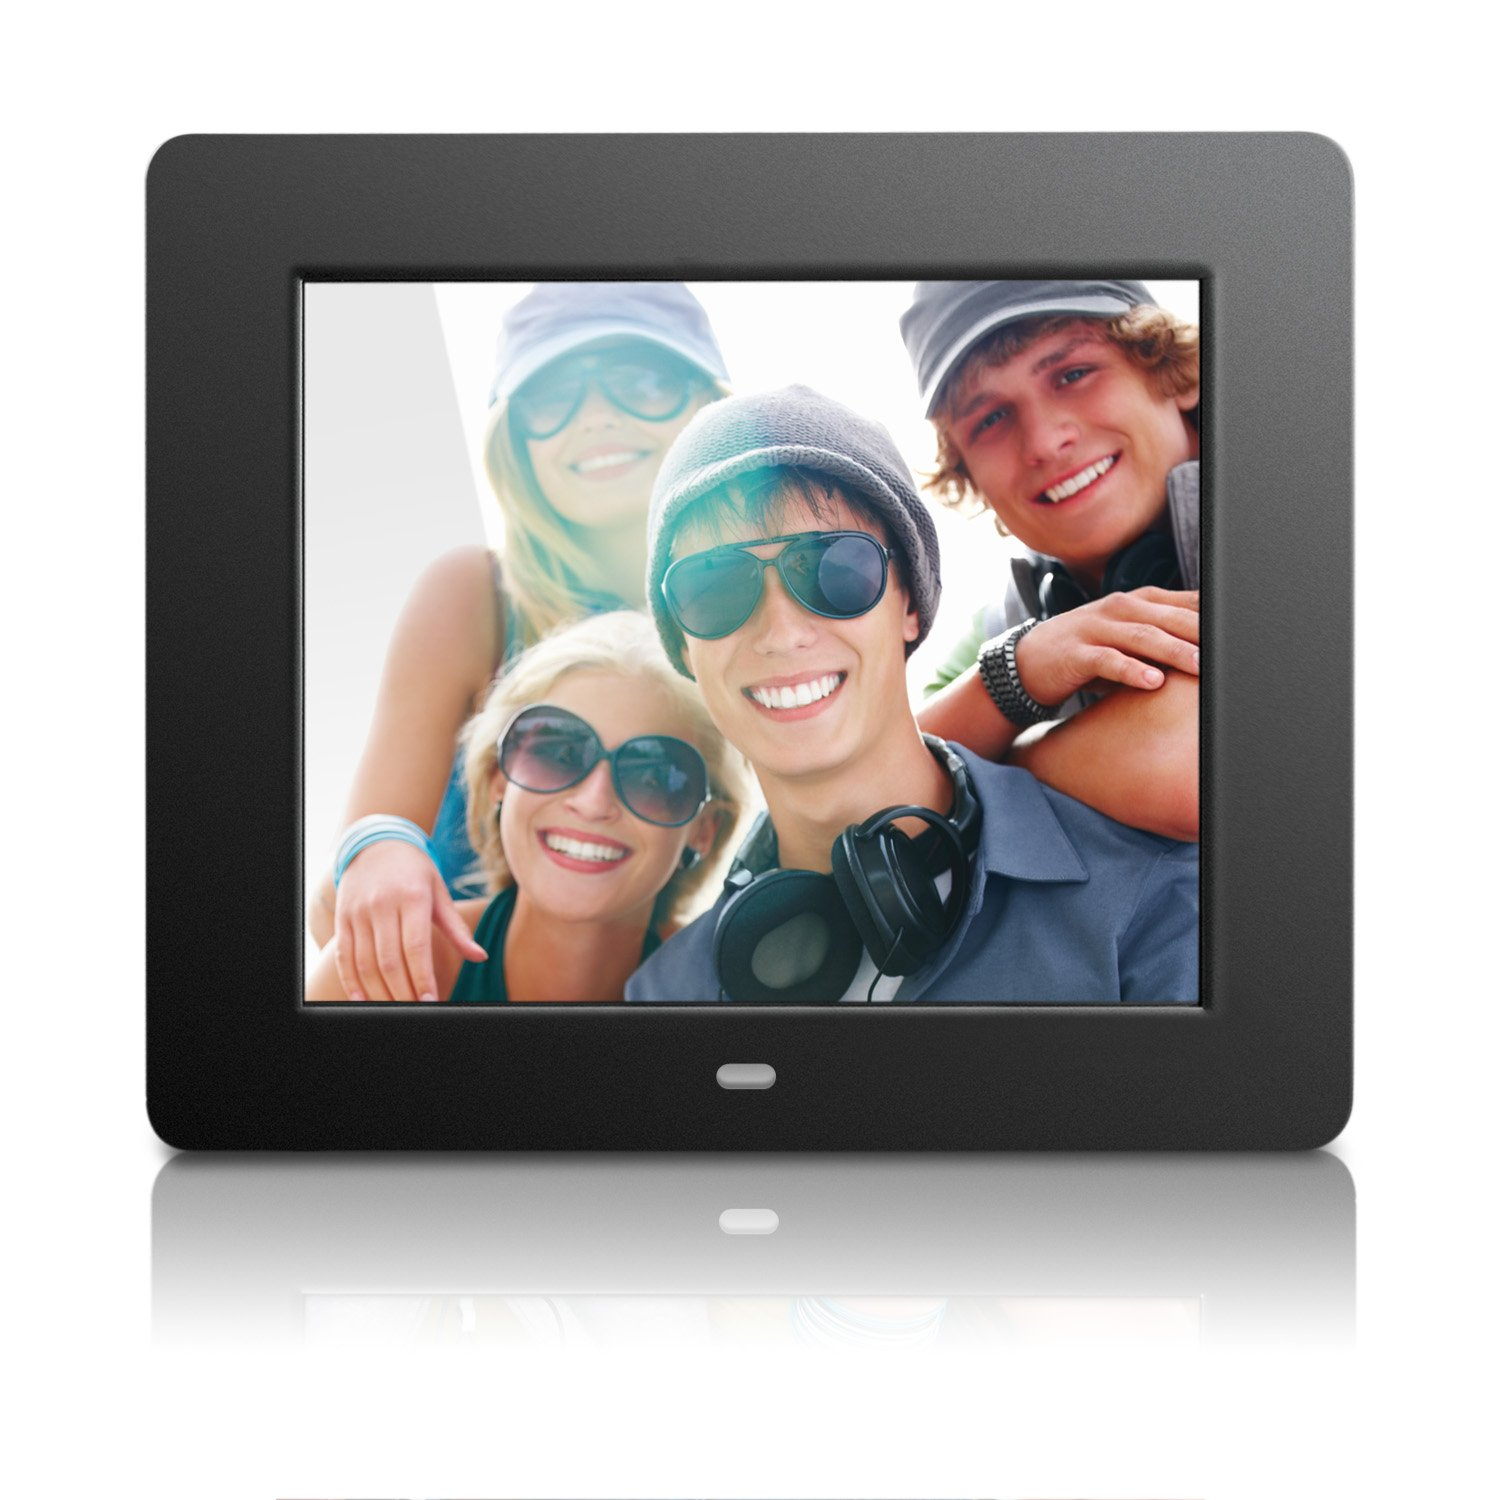 Buy Aluratek Adpf08sf 8 Inch Digital Photo Frame Black Online At